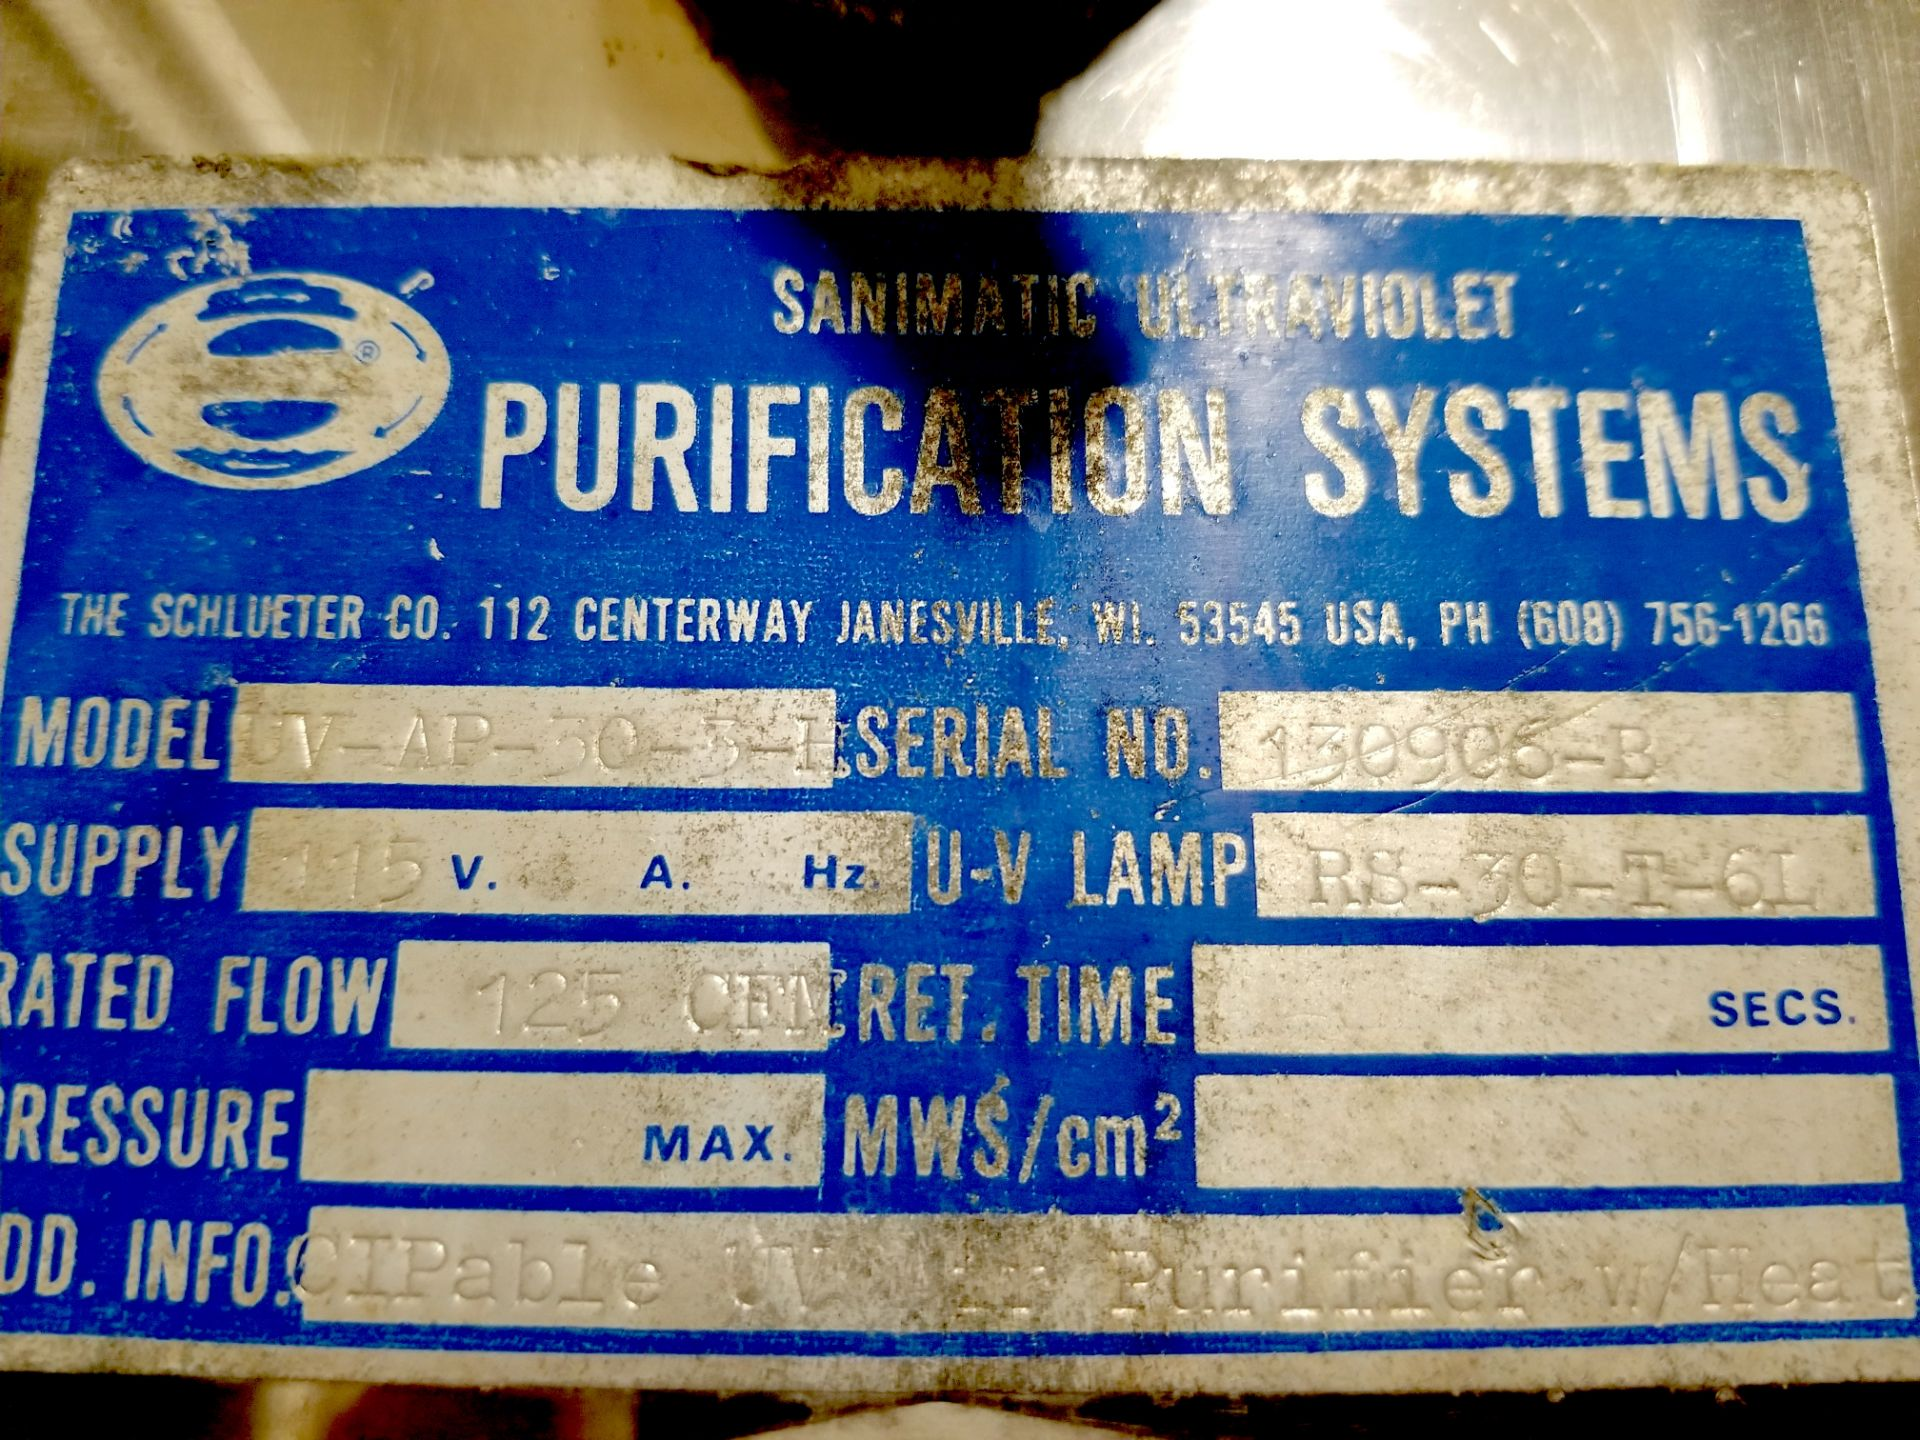 Sani-matic Ultraviolet Purification System - Image 2 of 4